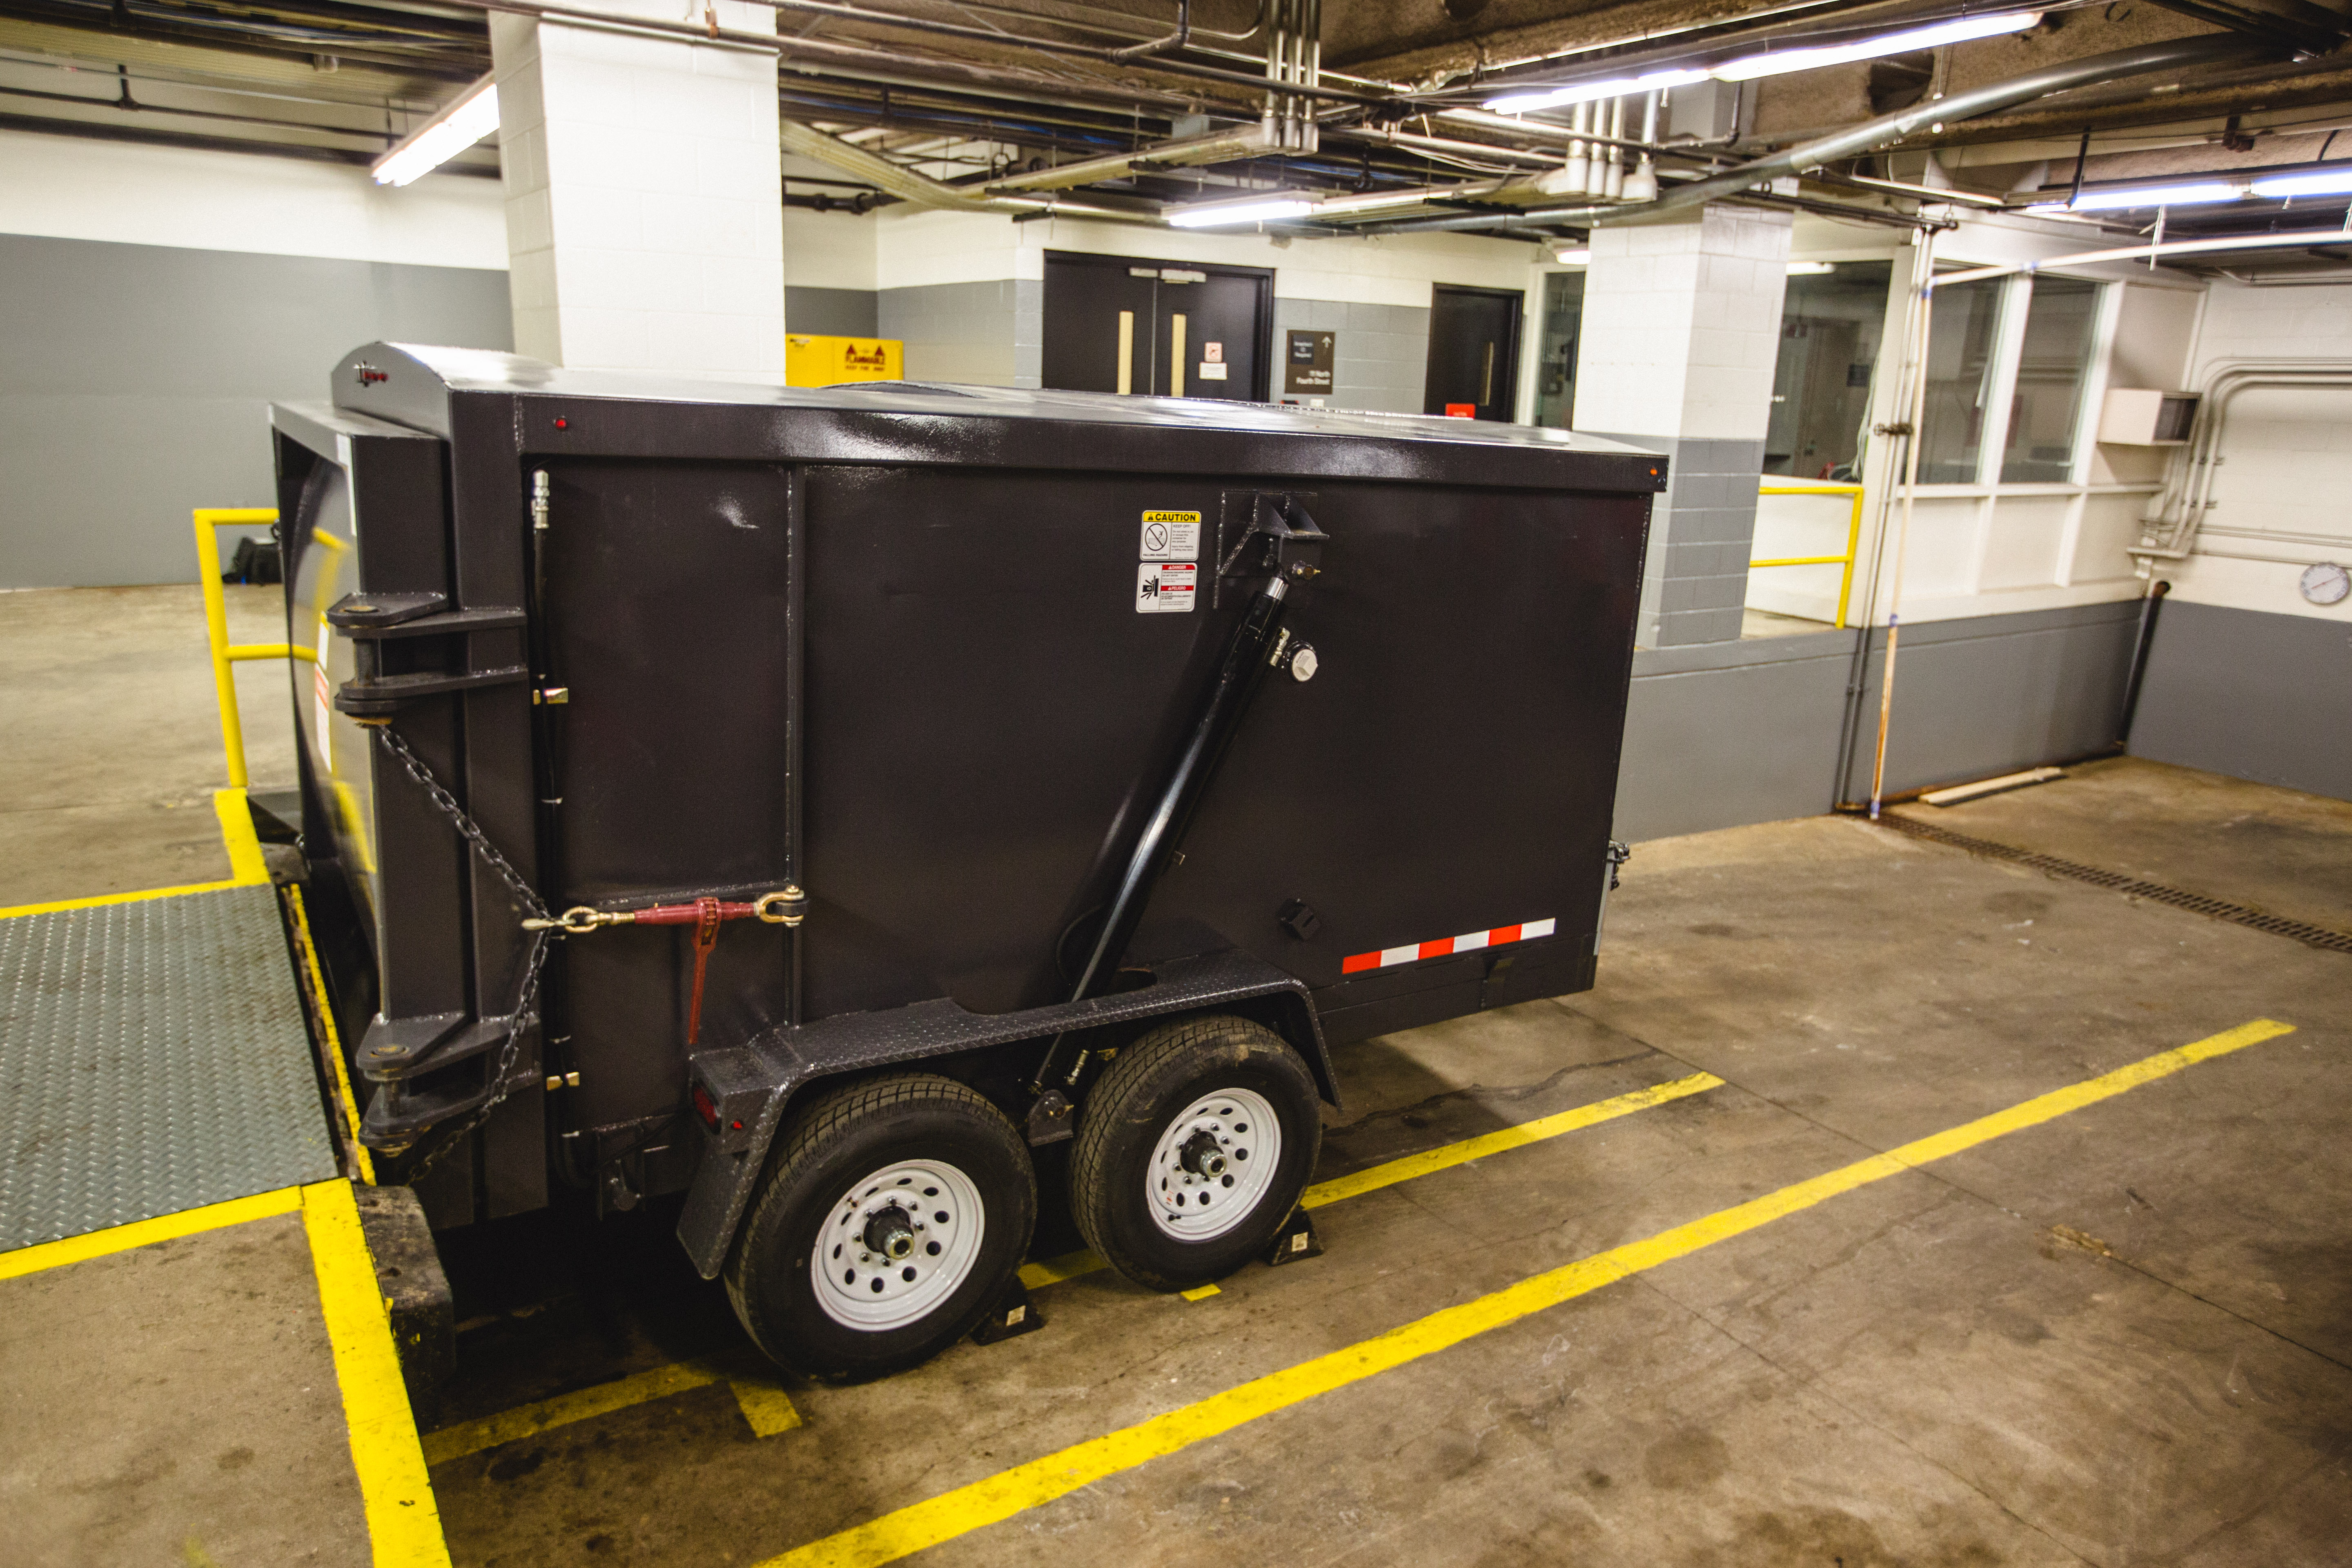 When the Qube Trailer is at a loading dock, waste materials can be manually loaded into the hopper on top of the Qube Trailer. This meets the minimum ISHA sill loading height requirements; simple and without any gates of electrical interlocks.